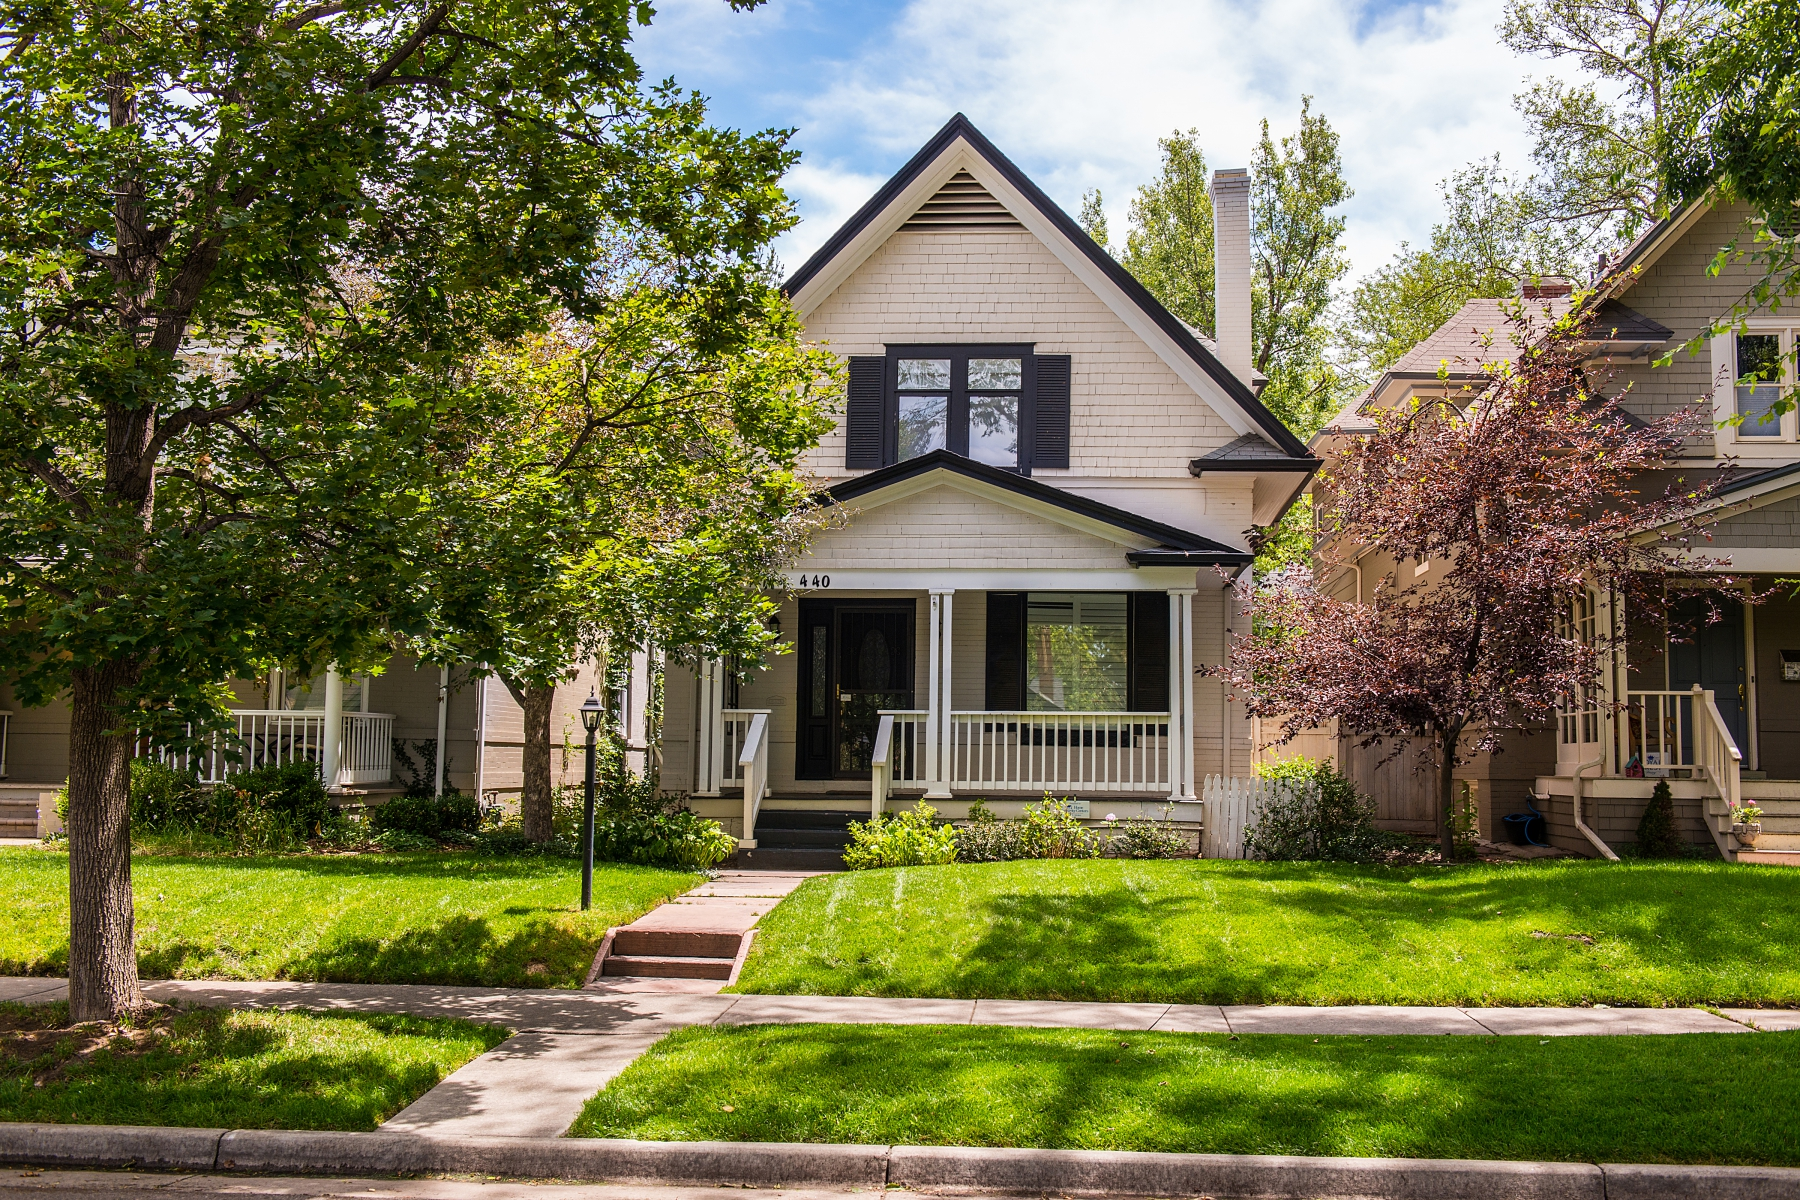 Single Family Home for Sale at Elegant and Private Country Club North Home 440 Lafayette Street Denver, Colorado 80218 United States